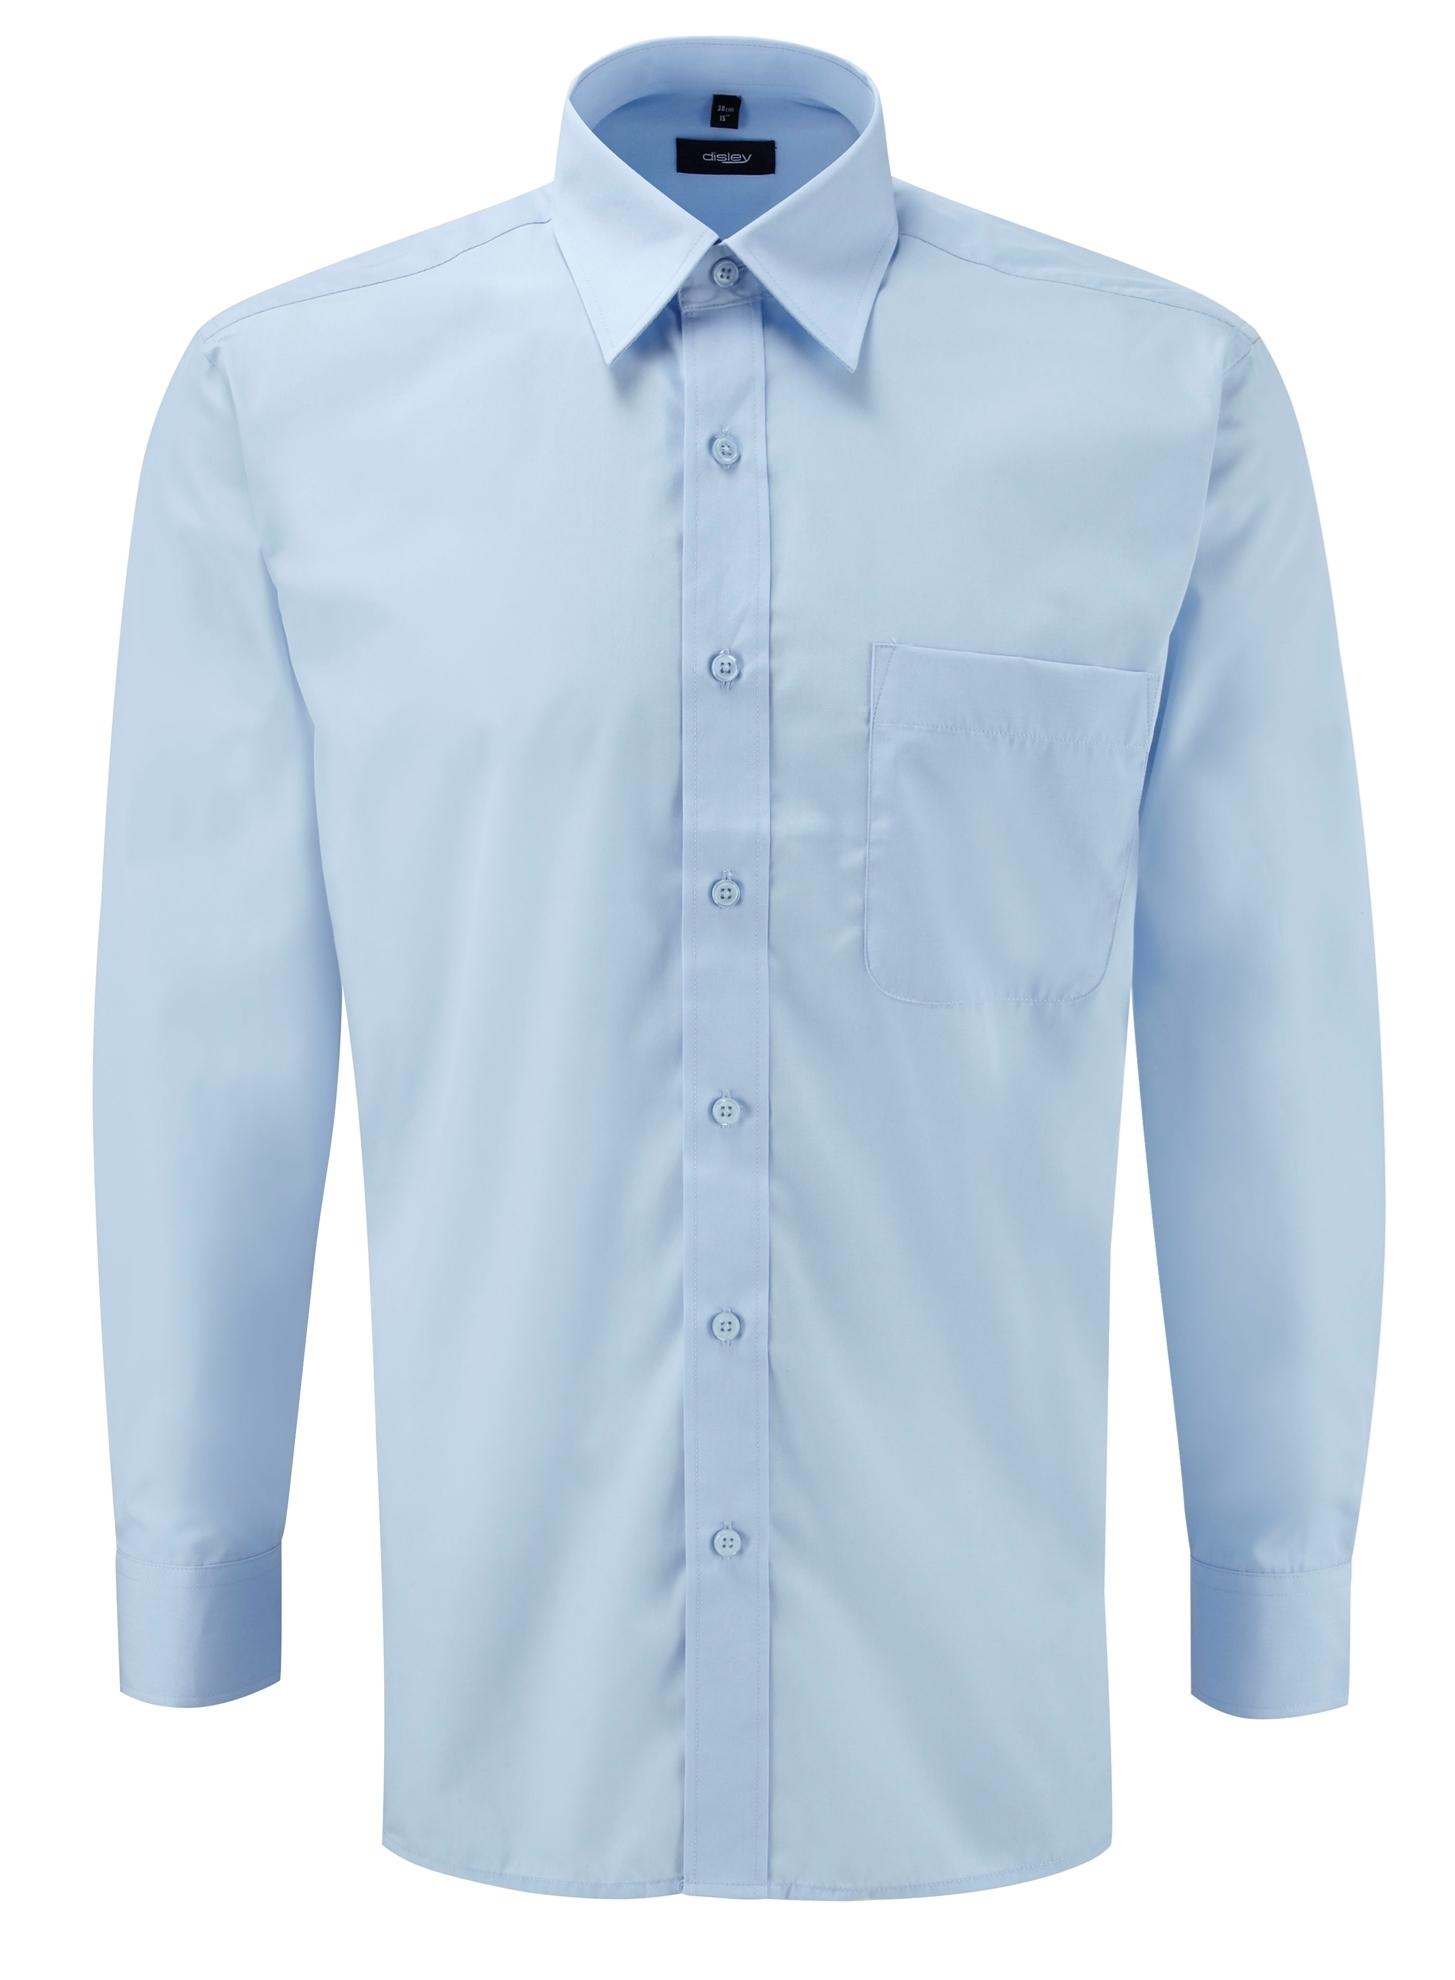 Picture of Male Long Sleeve Shirt - Plain Light Blue